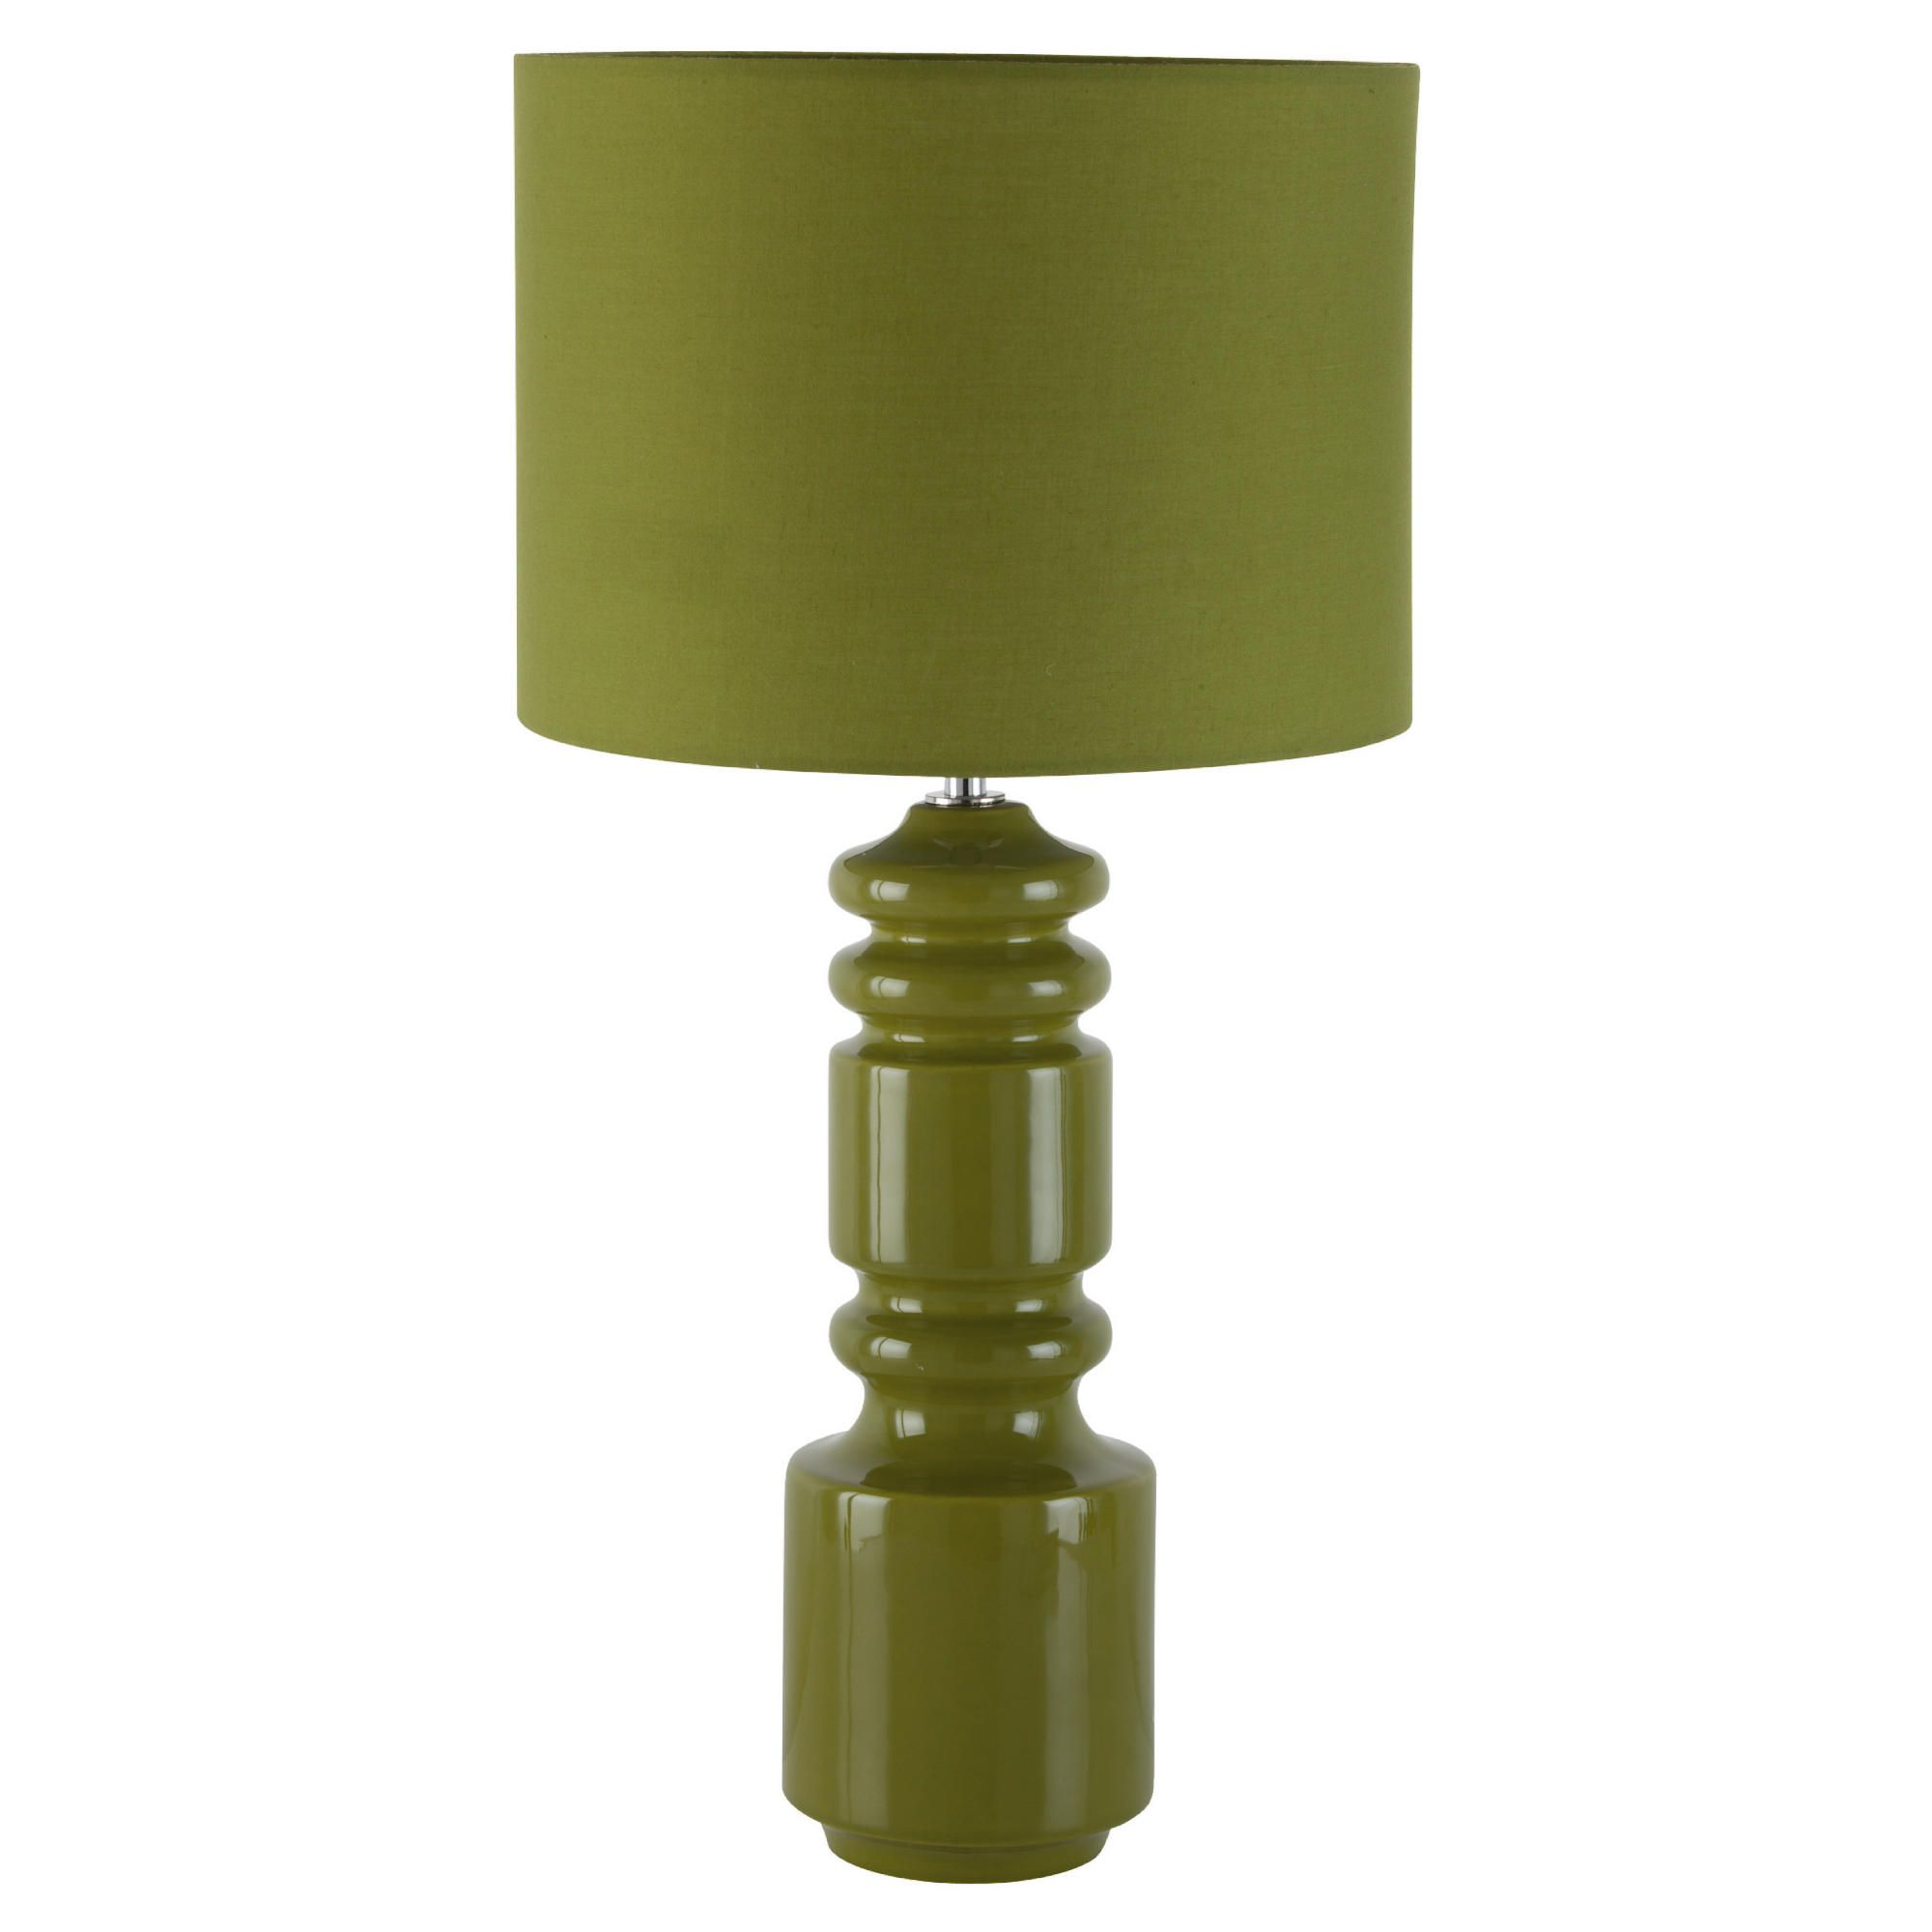 Tesco Lighting Totem Ceramic Table Lamp  Olive